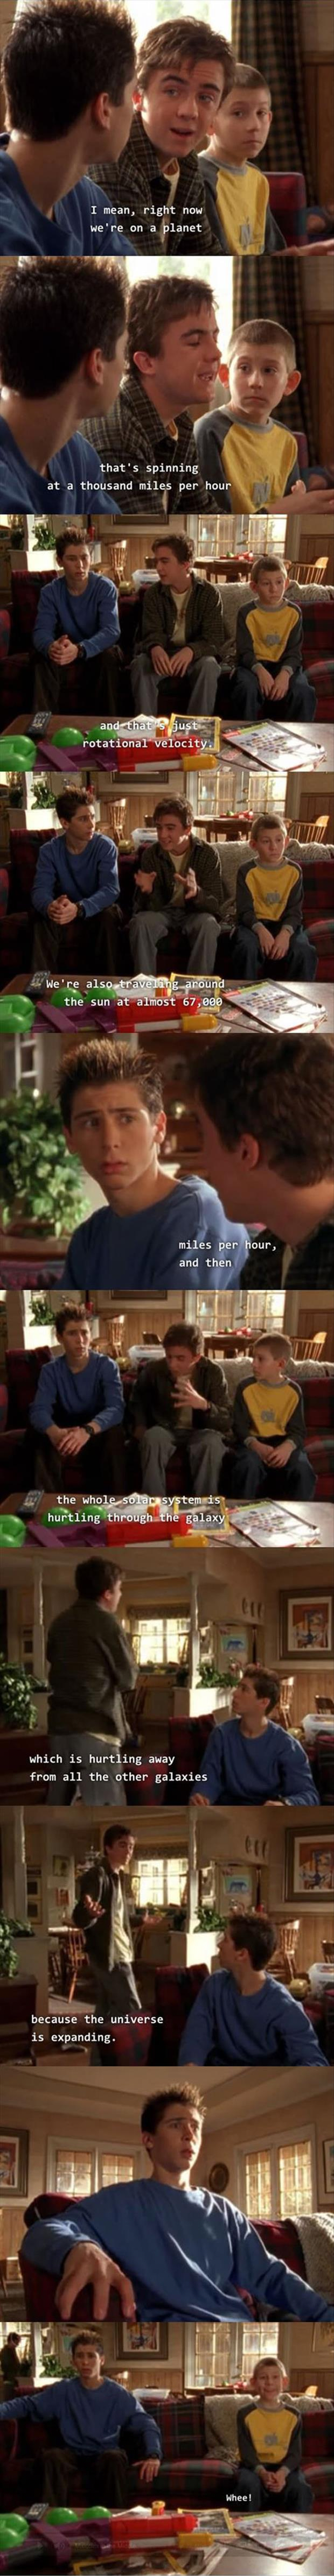 malcom in the middle 1